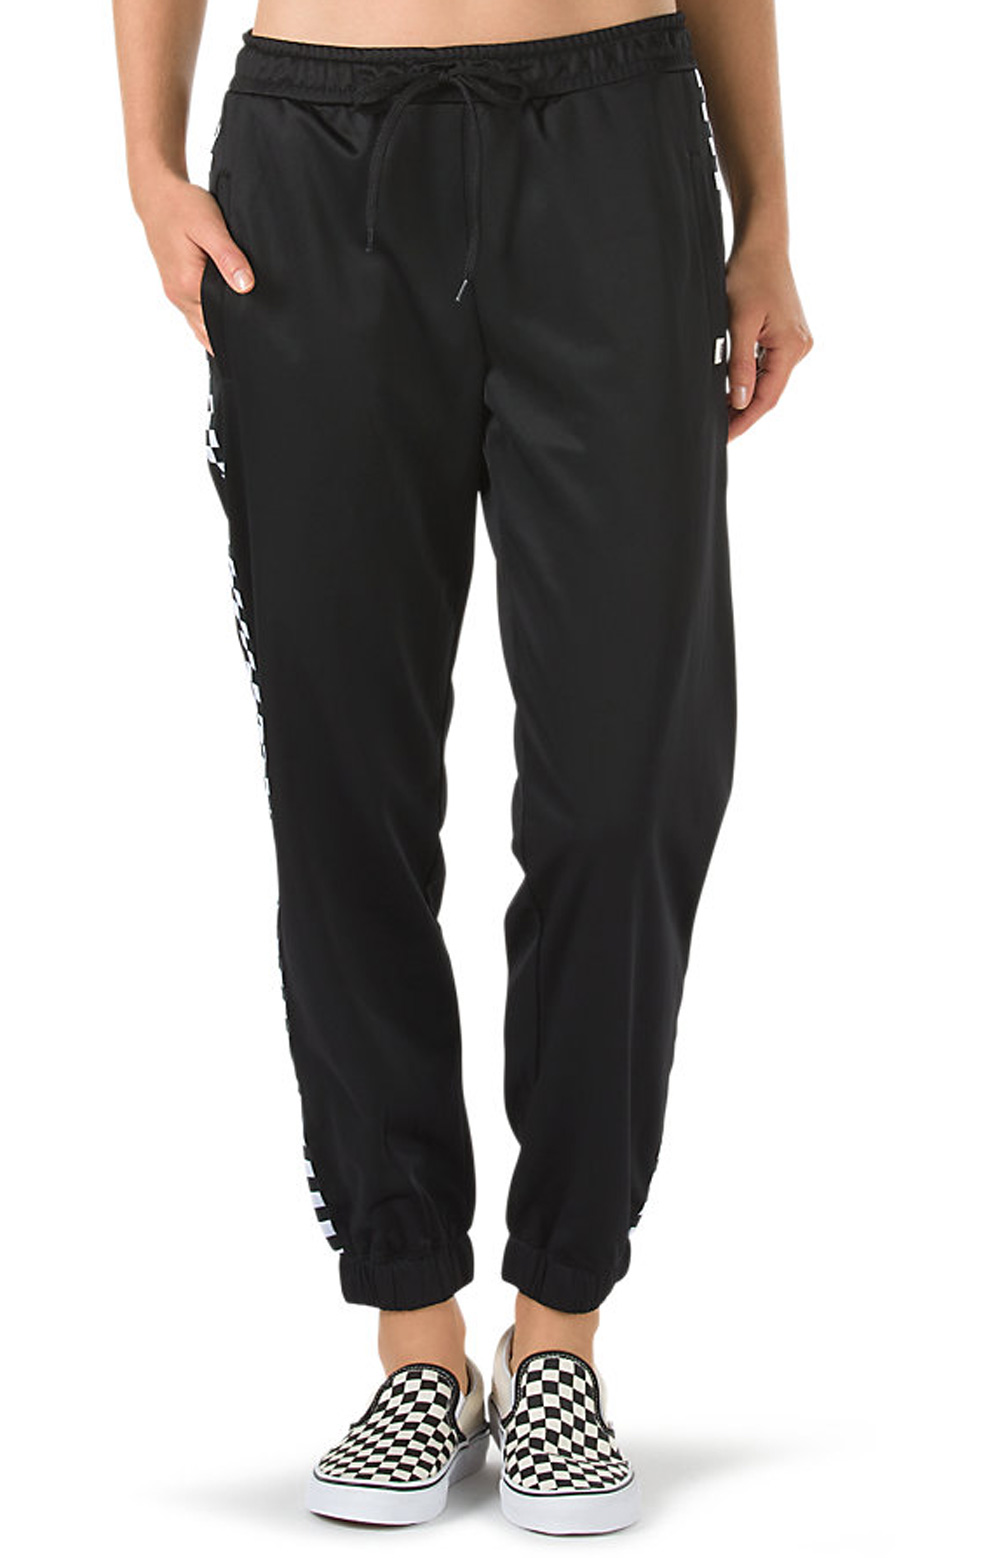 b45de5e075 West End Track Pant - Black